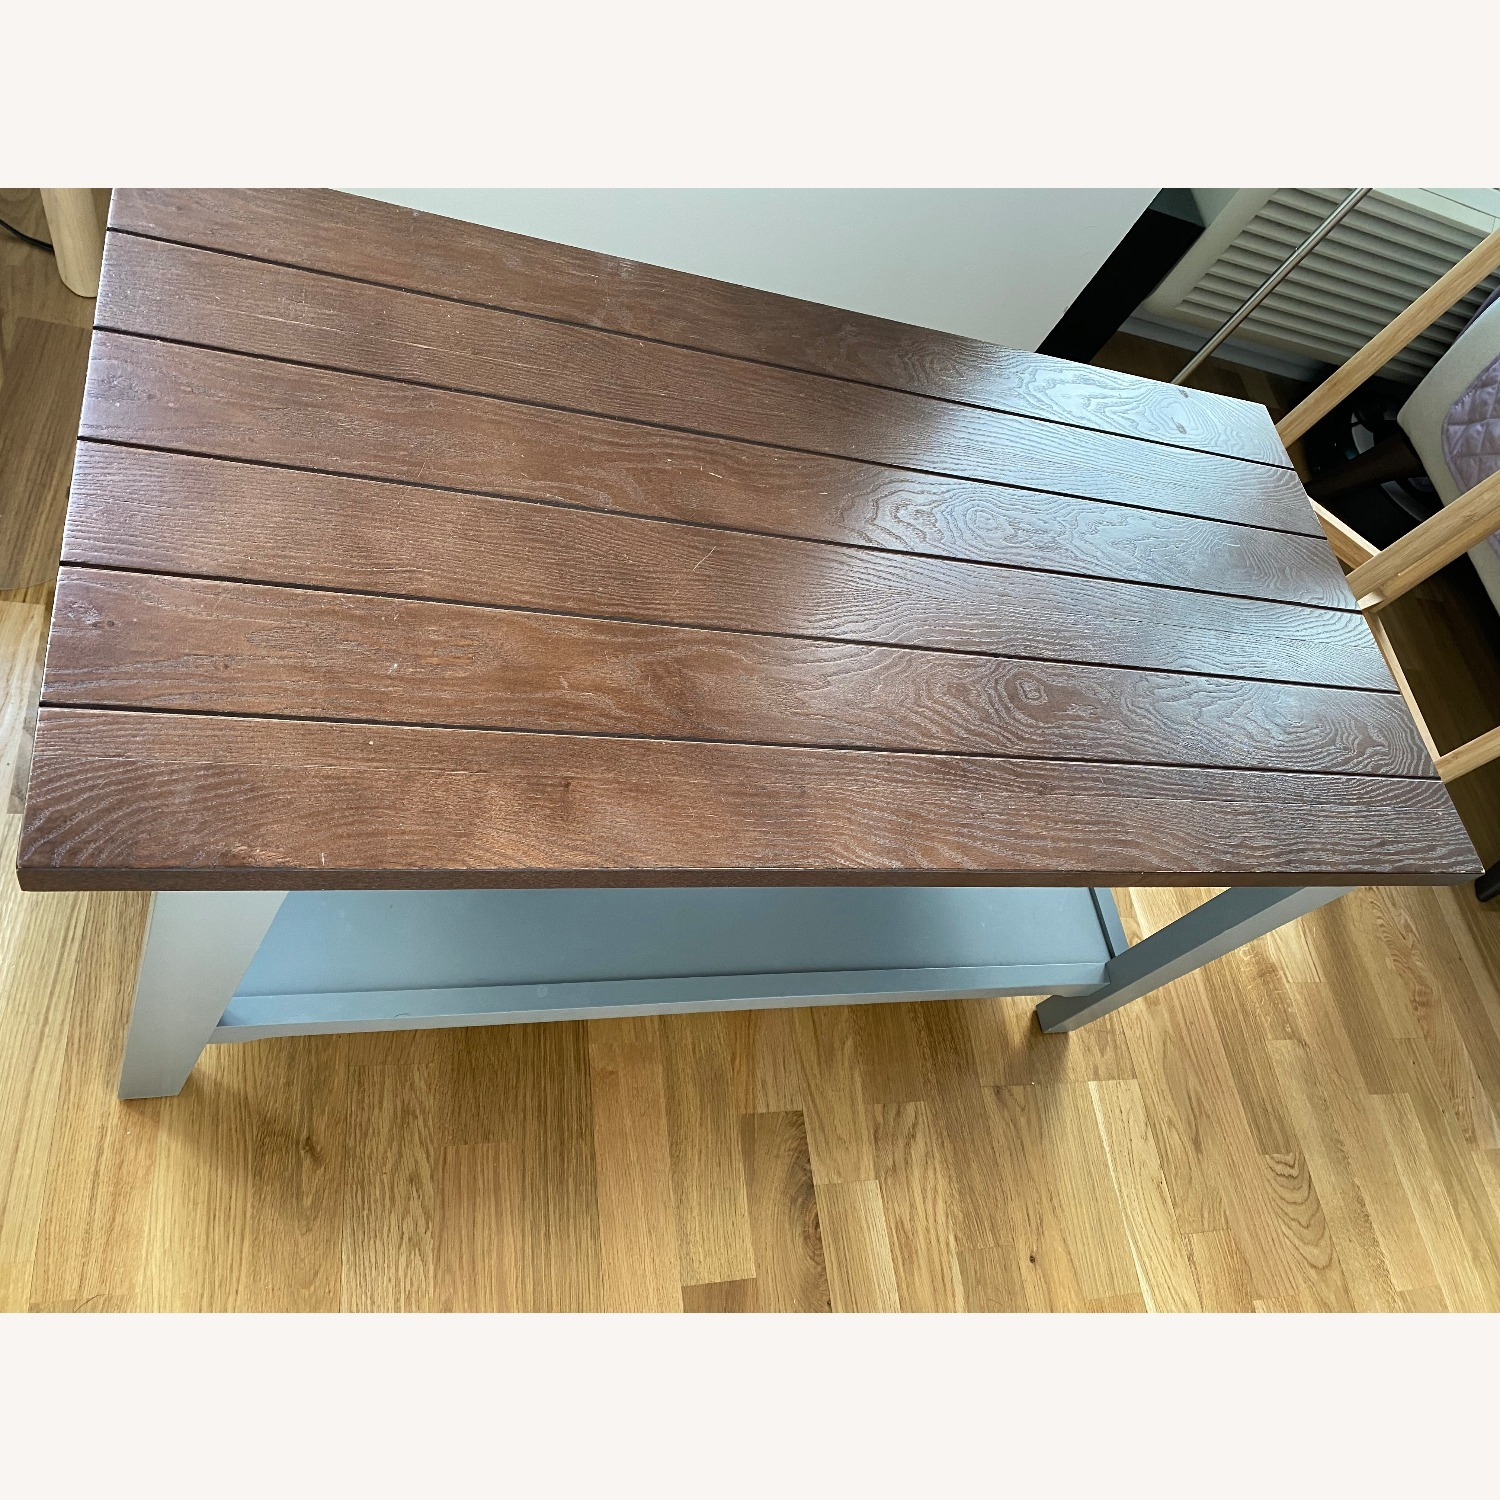 Chatham House Newport Coffee Table in Grey - image-3